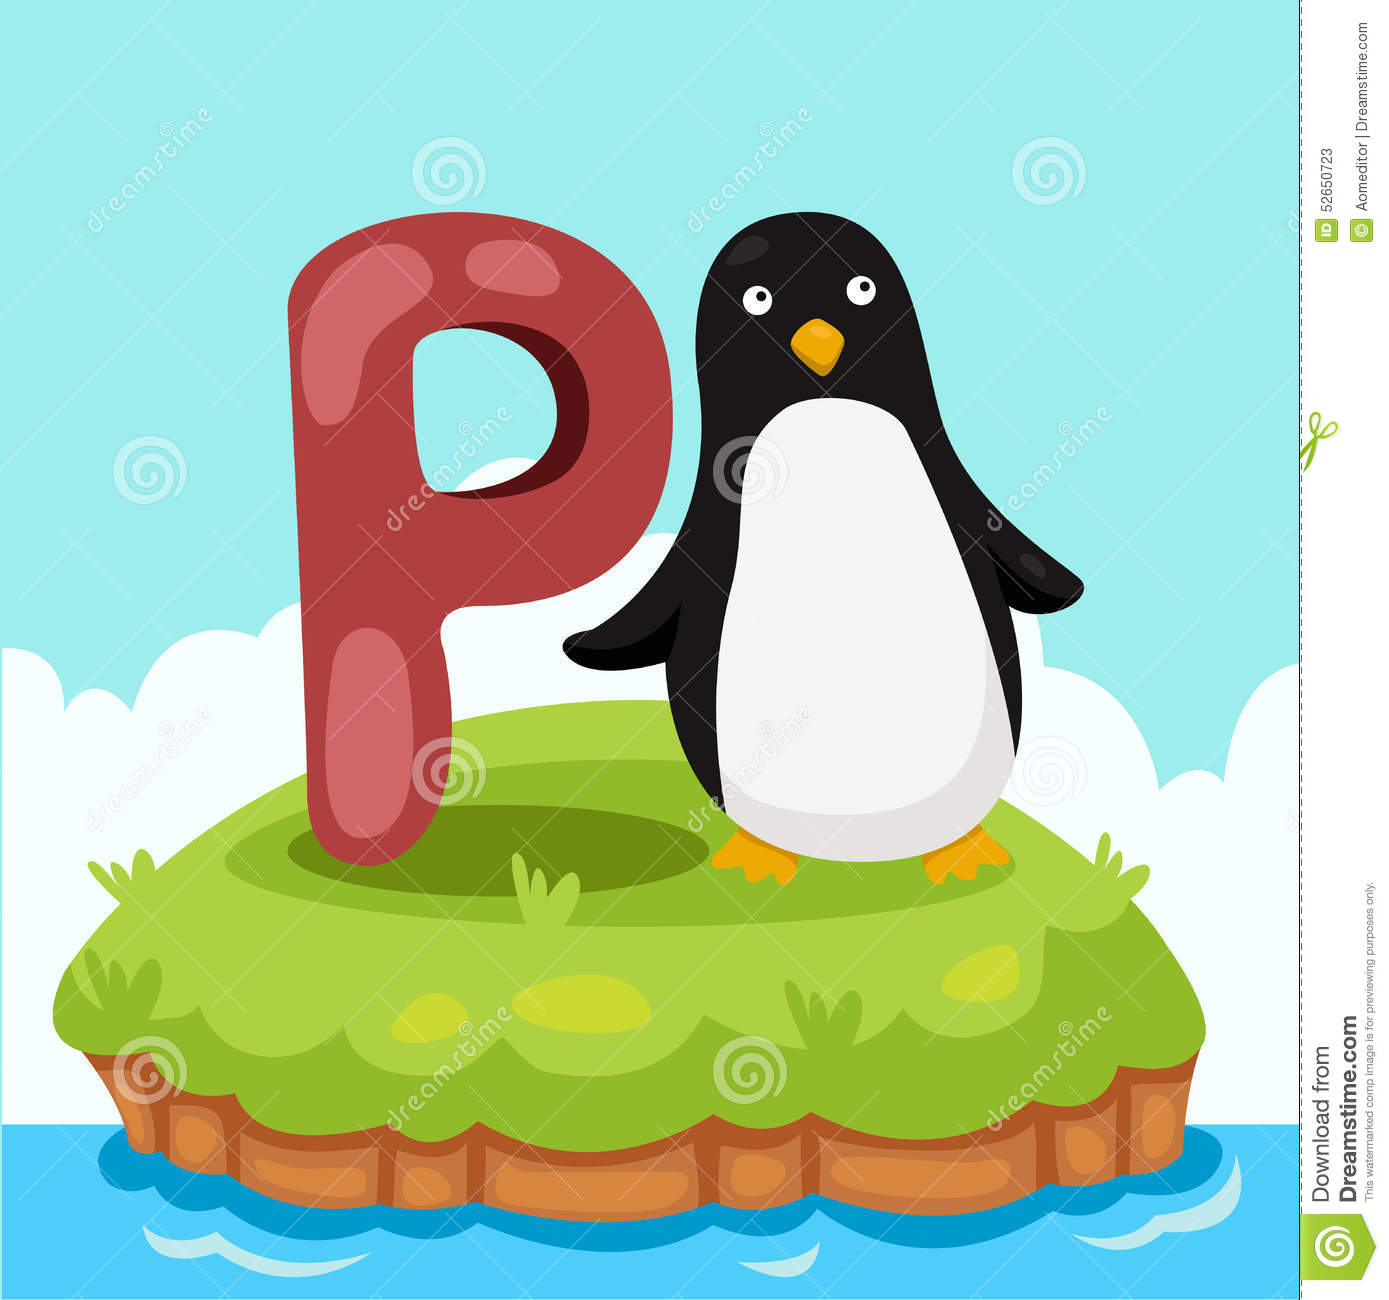 9 Letter Cartoon Characters : Illustrator of letter p is for penquin stock vector